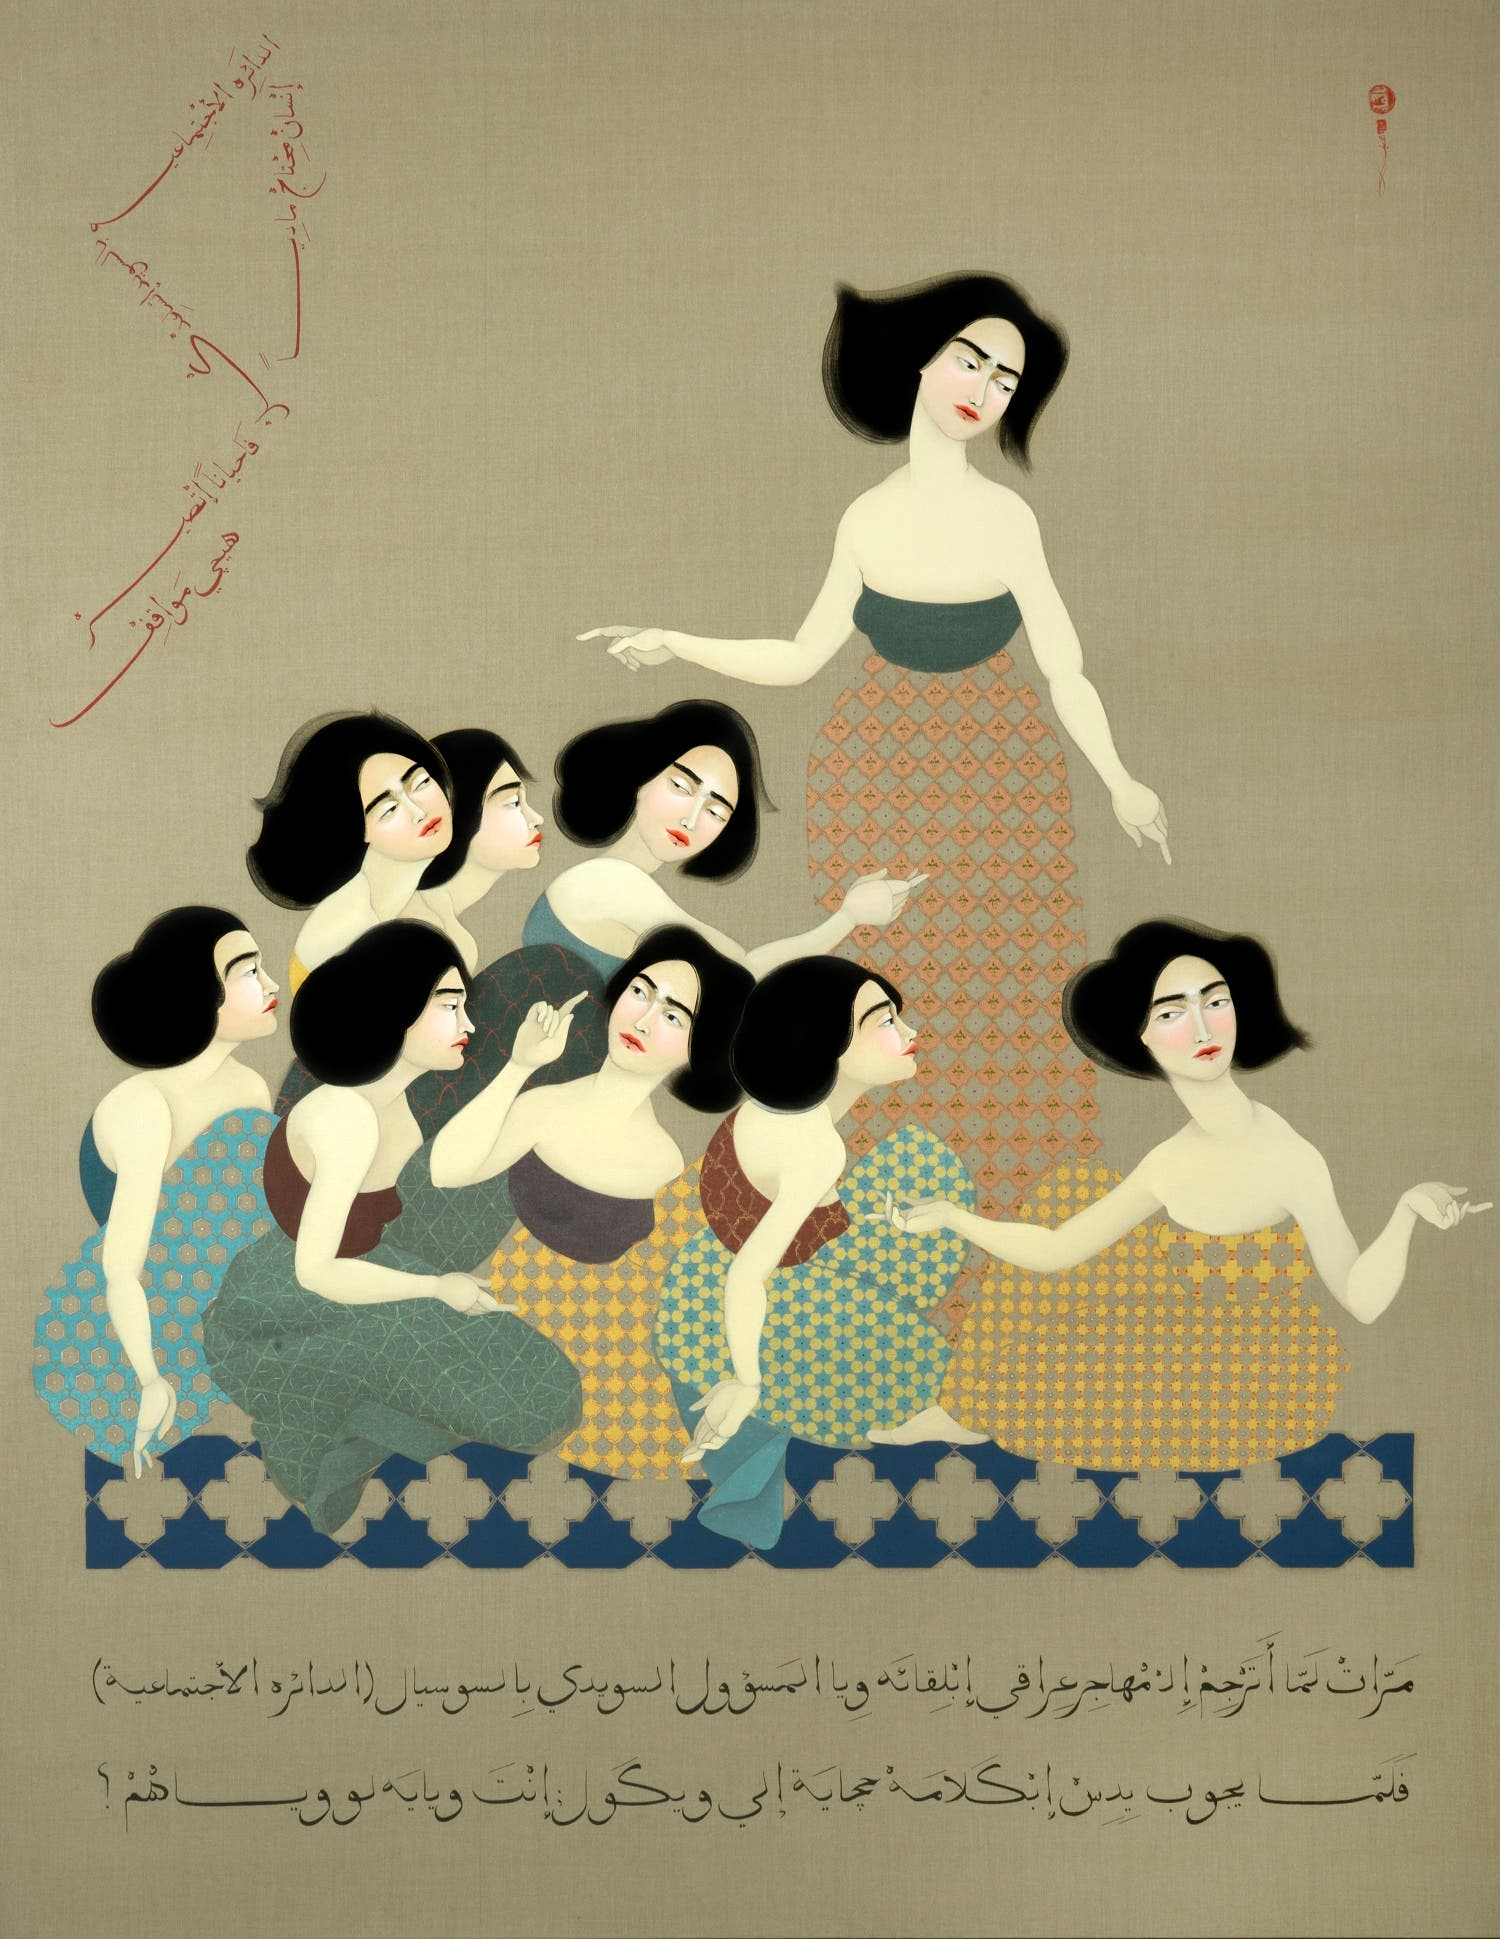 Hayv Kahraman: The Translator from the series How Iraqi Are You? (2015); Oils on linen. (Photo courtesy:  Defares Collection)